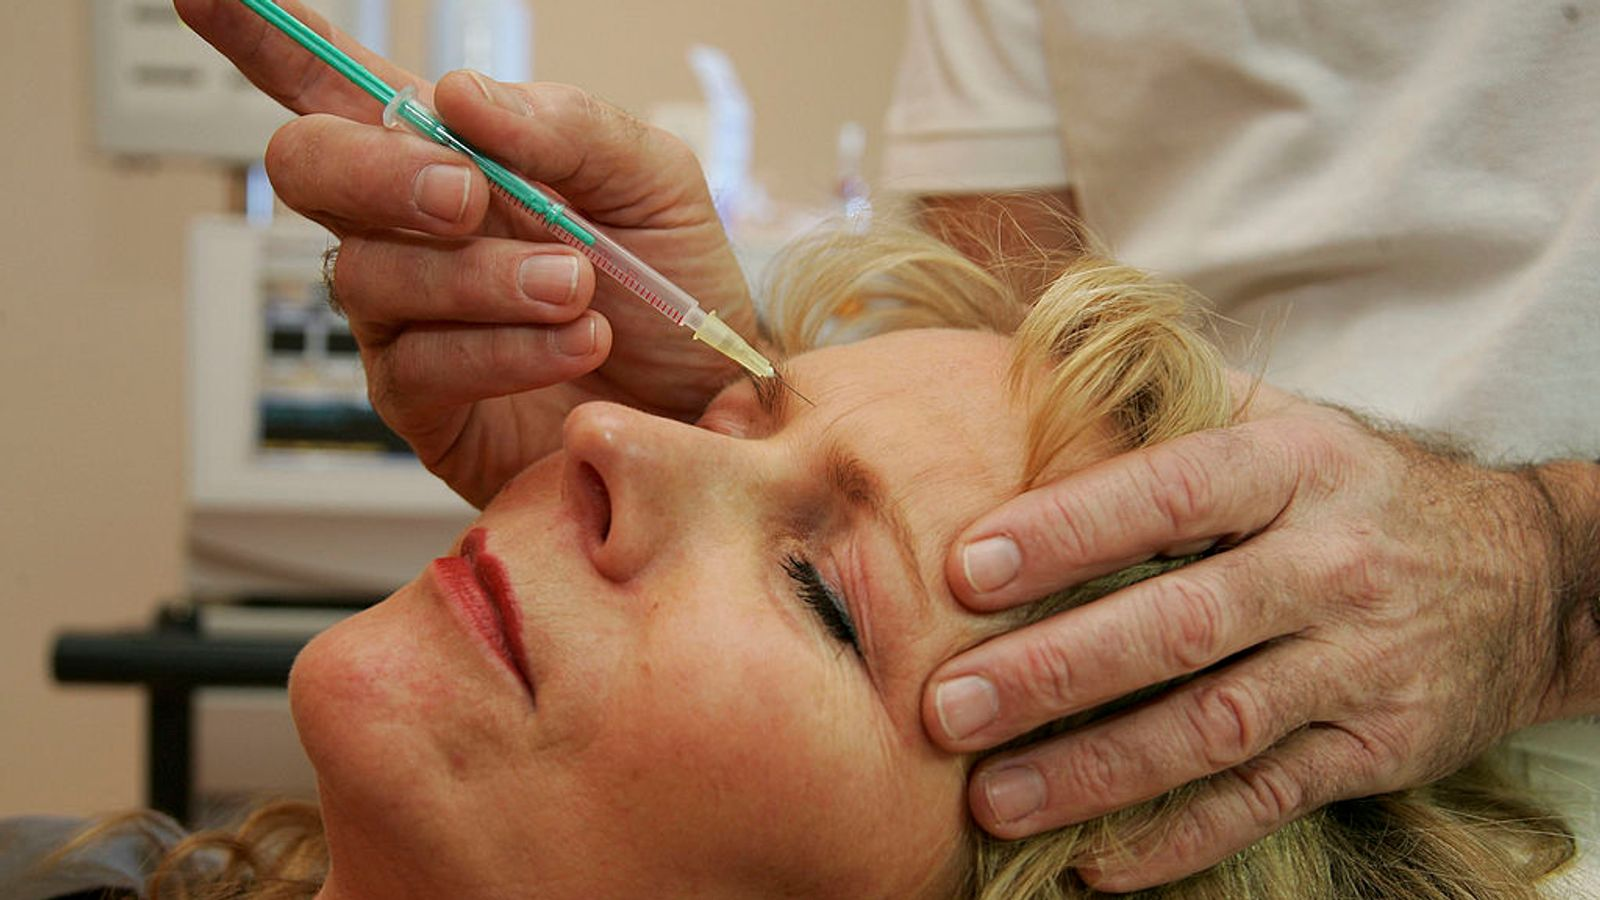 Botox injections could be used to treat depression, study ...